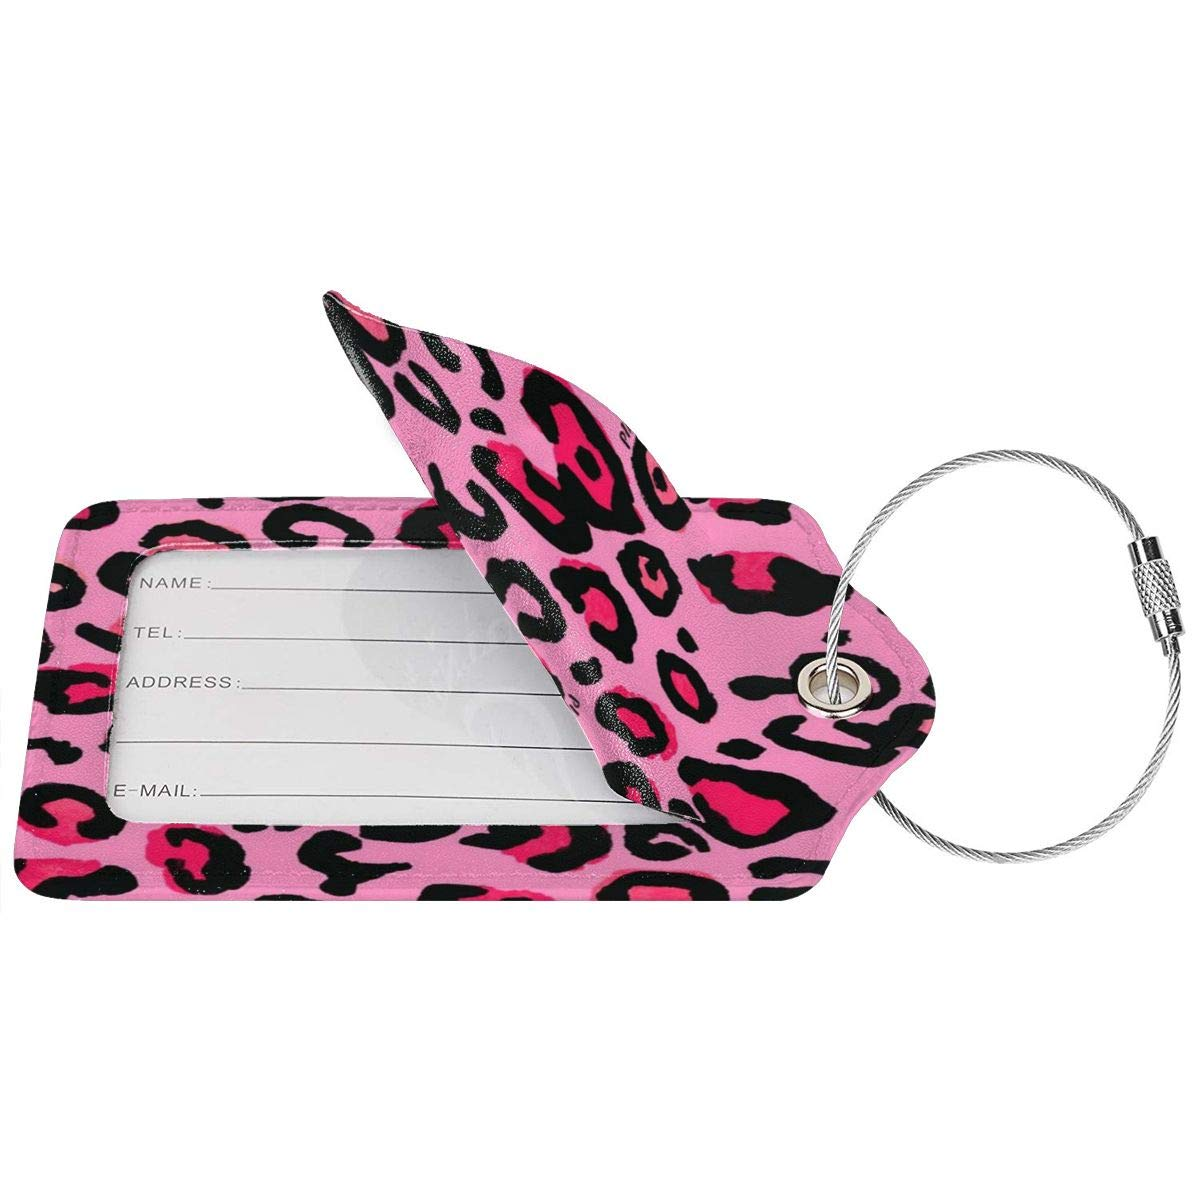 Cheetah Lignt Pink Leopard 2.7 x 4.6 Blank Tag Key Tags for Cruise Ships Honeymoon Gift Leather Luggage Tags Full Privacy Cover and Stainless Steel Loop 1 2 4 Pcs Set